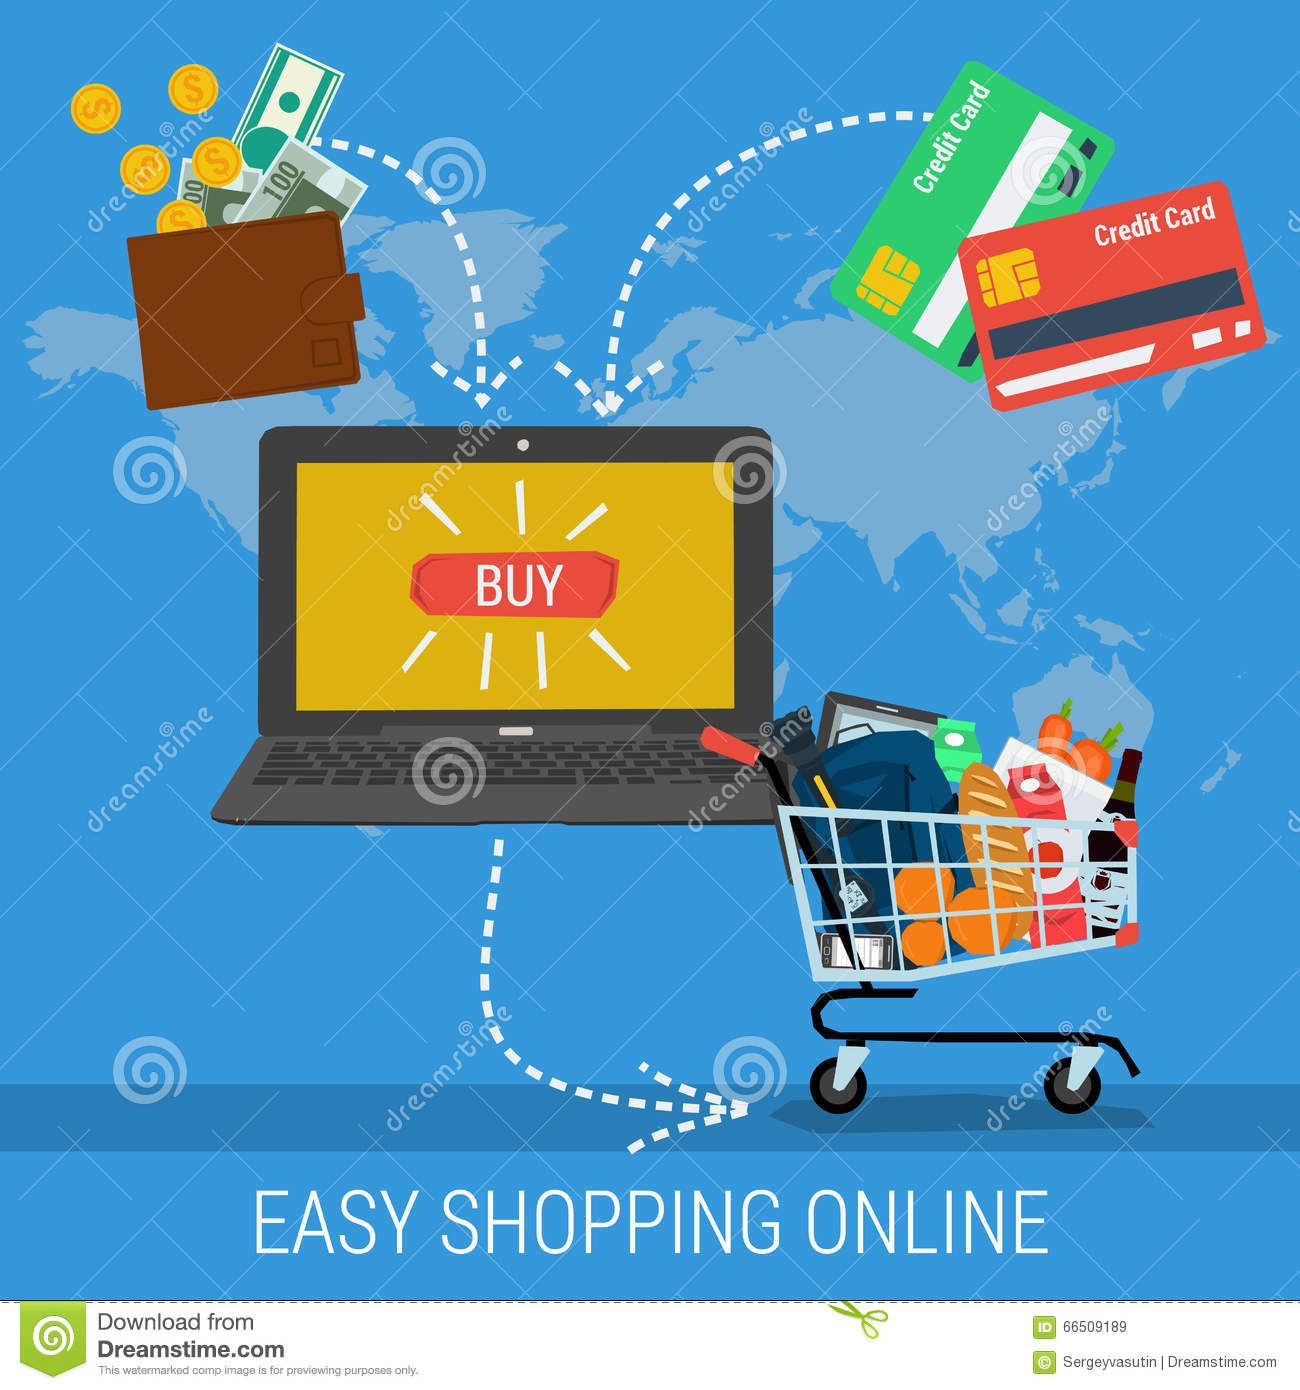 Shopping online using checking account